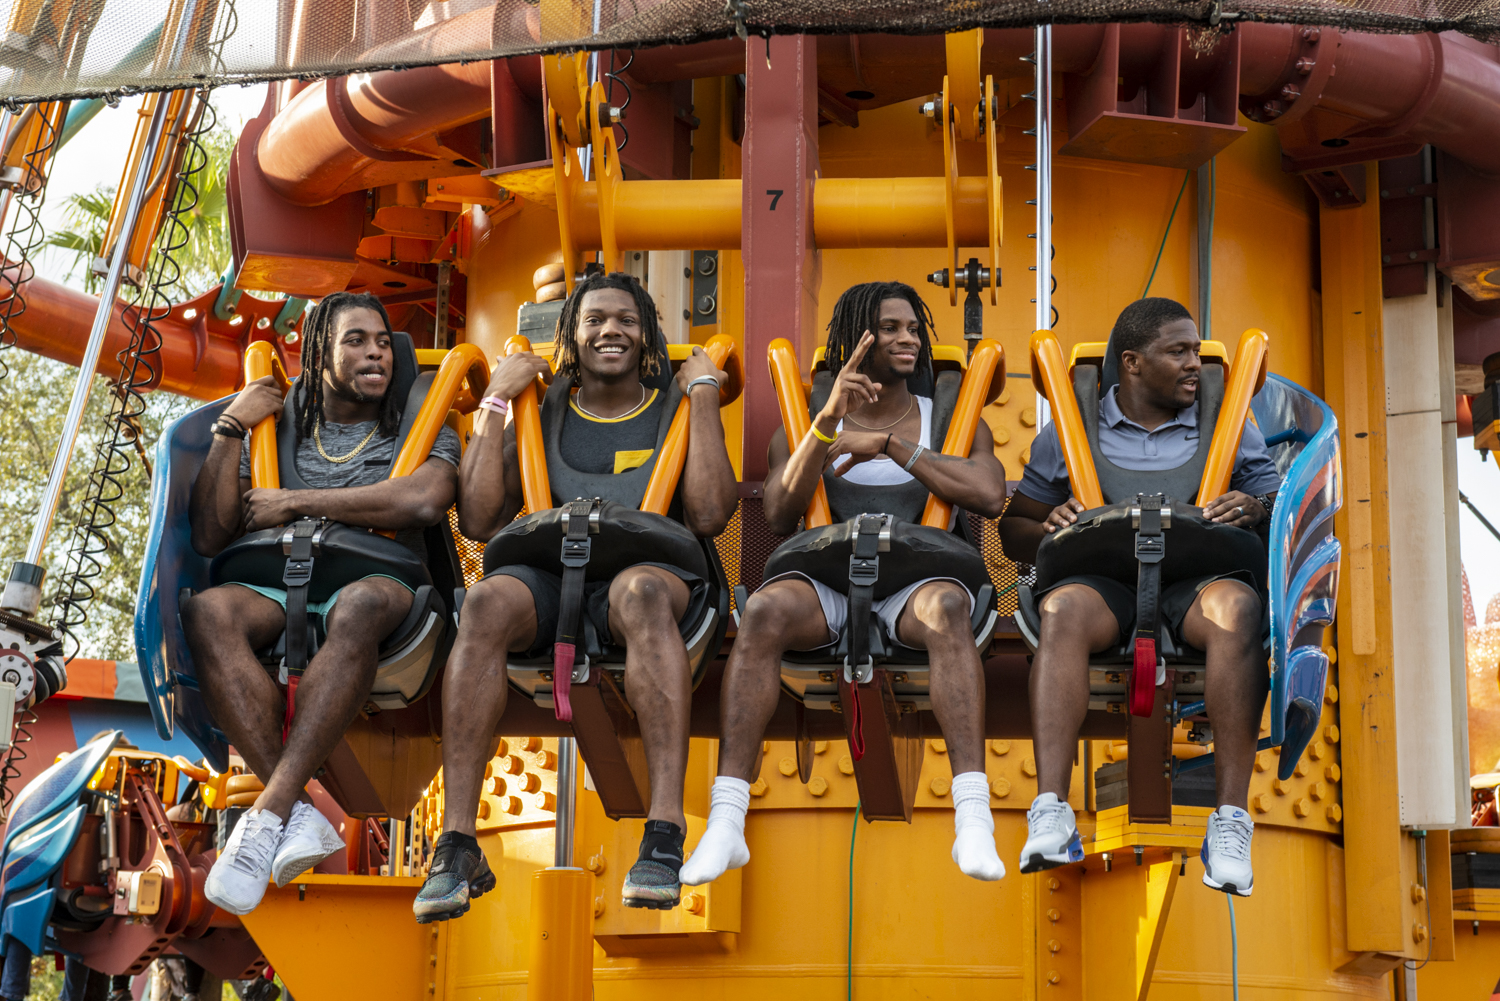 Iowa players ride the Falcon's Fury during a visit to Busch Gardens in Tampa, Florida on Saturday, December 29, 2018.